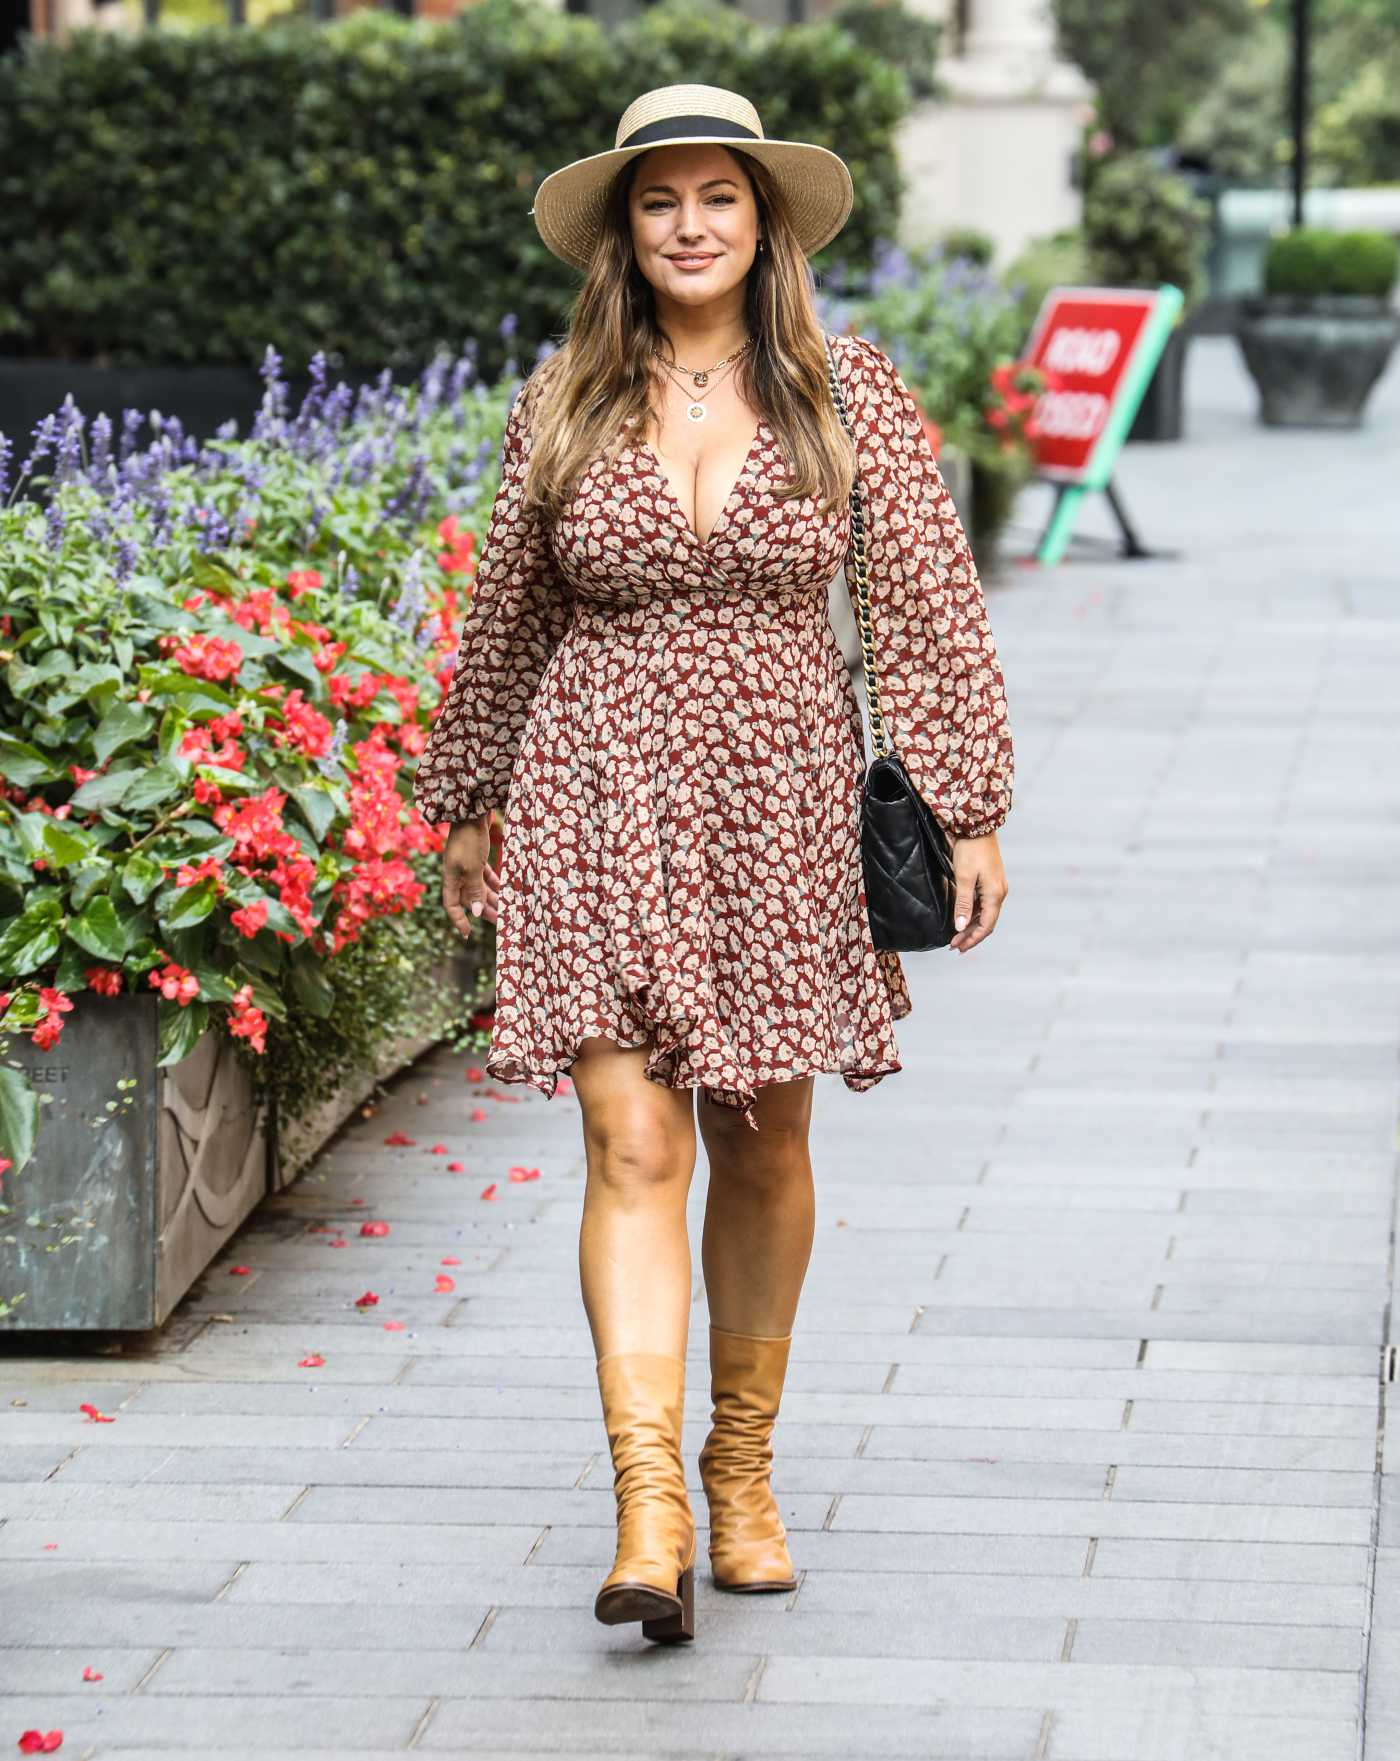 Kelly Brook in a Short Floral Dress Arrives at the Global Radio Studios in London 08/13/2020